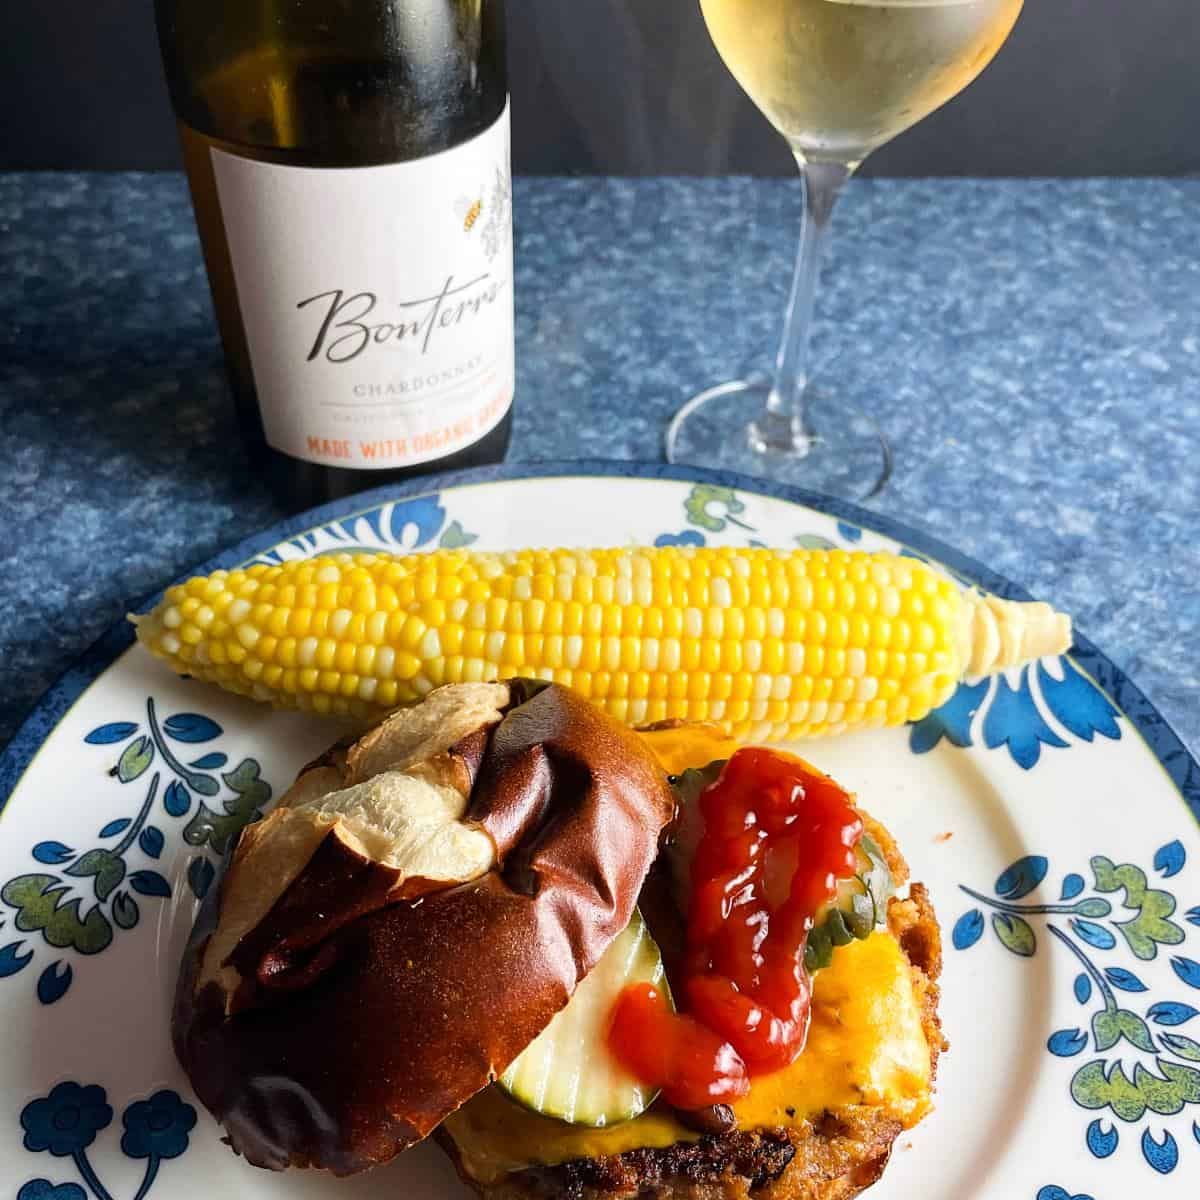 veggie burger with a side of corn on the cob, served with Bonterra Chardonnay white wine.